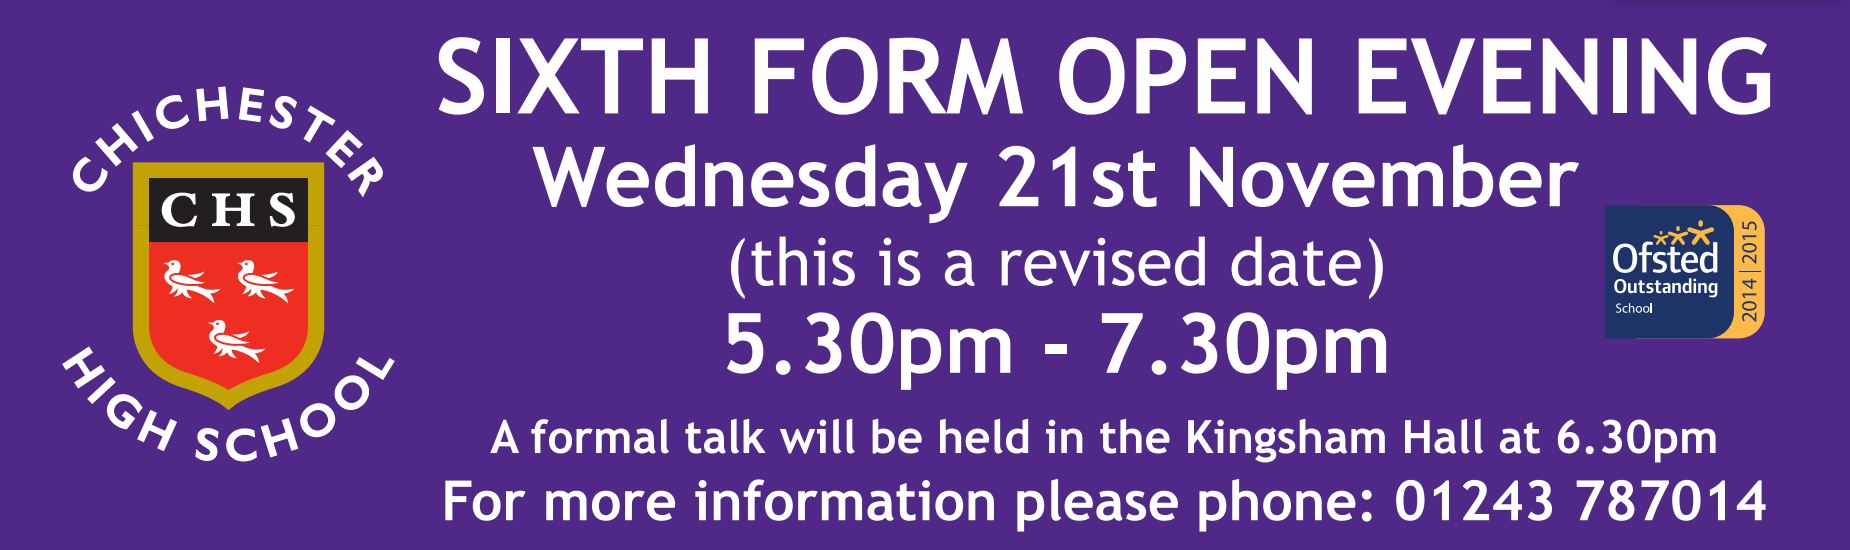 Sixth Form Open Evening (new date)